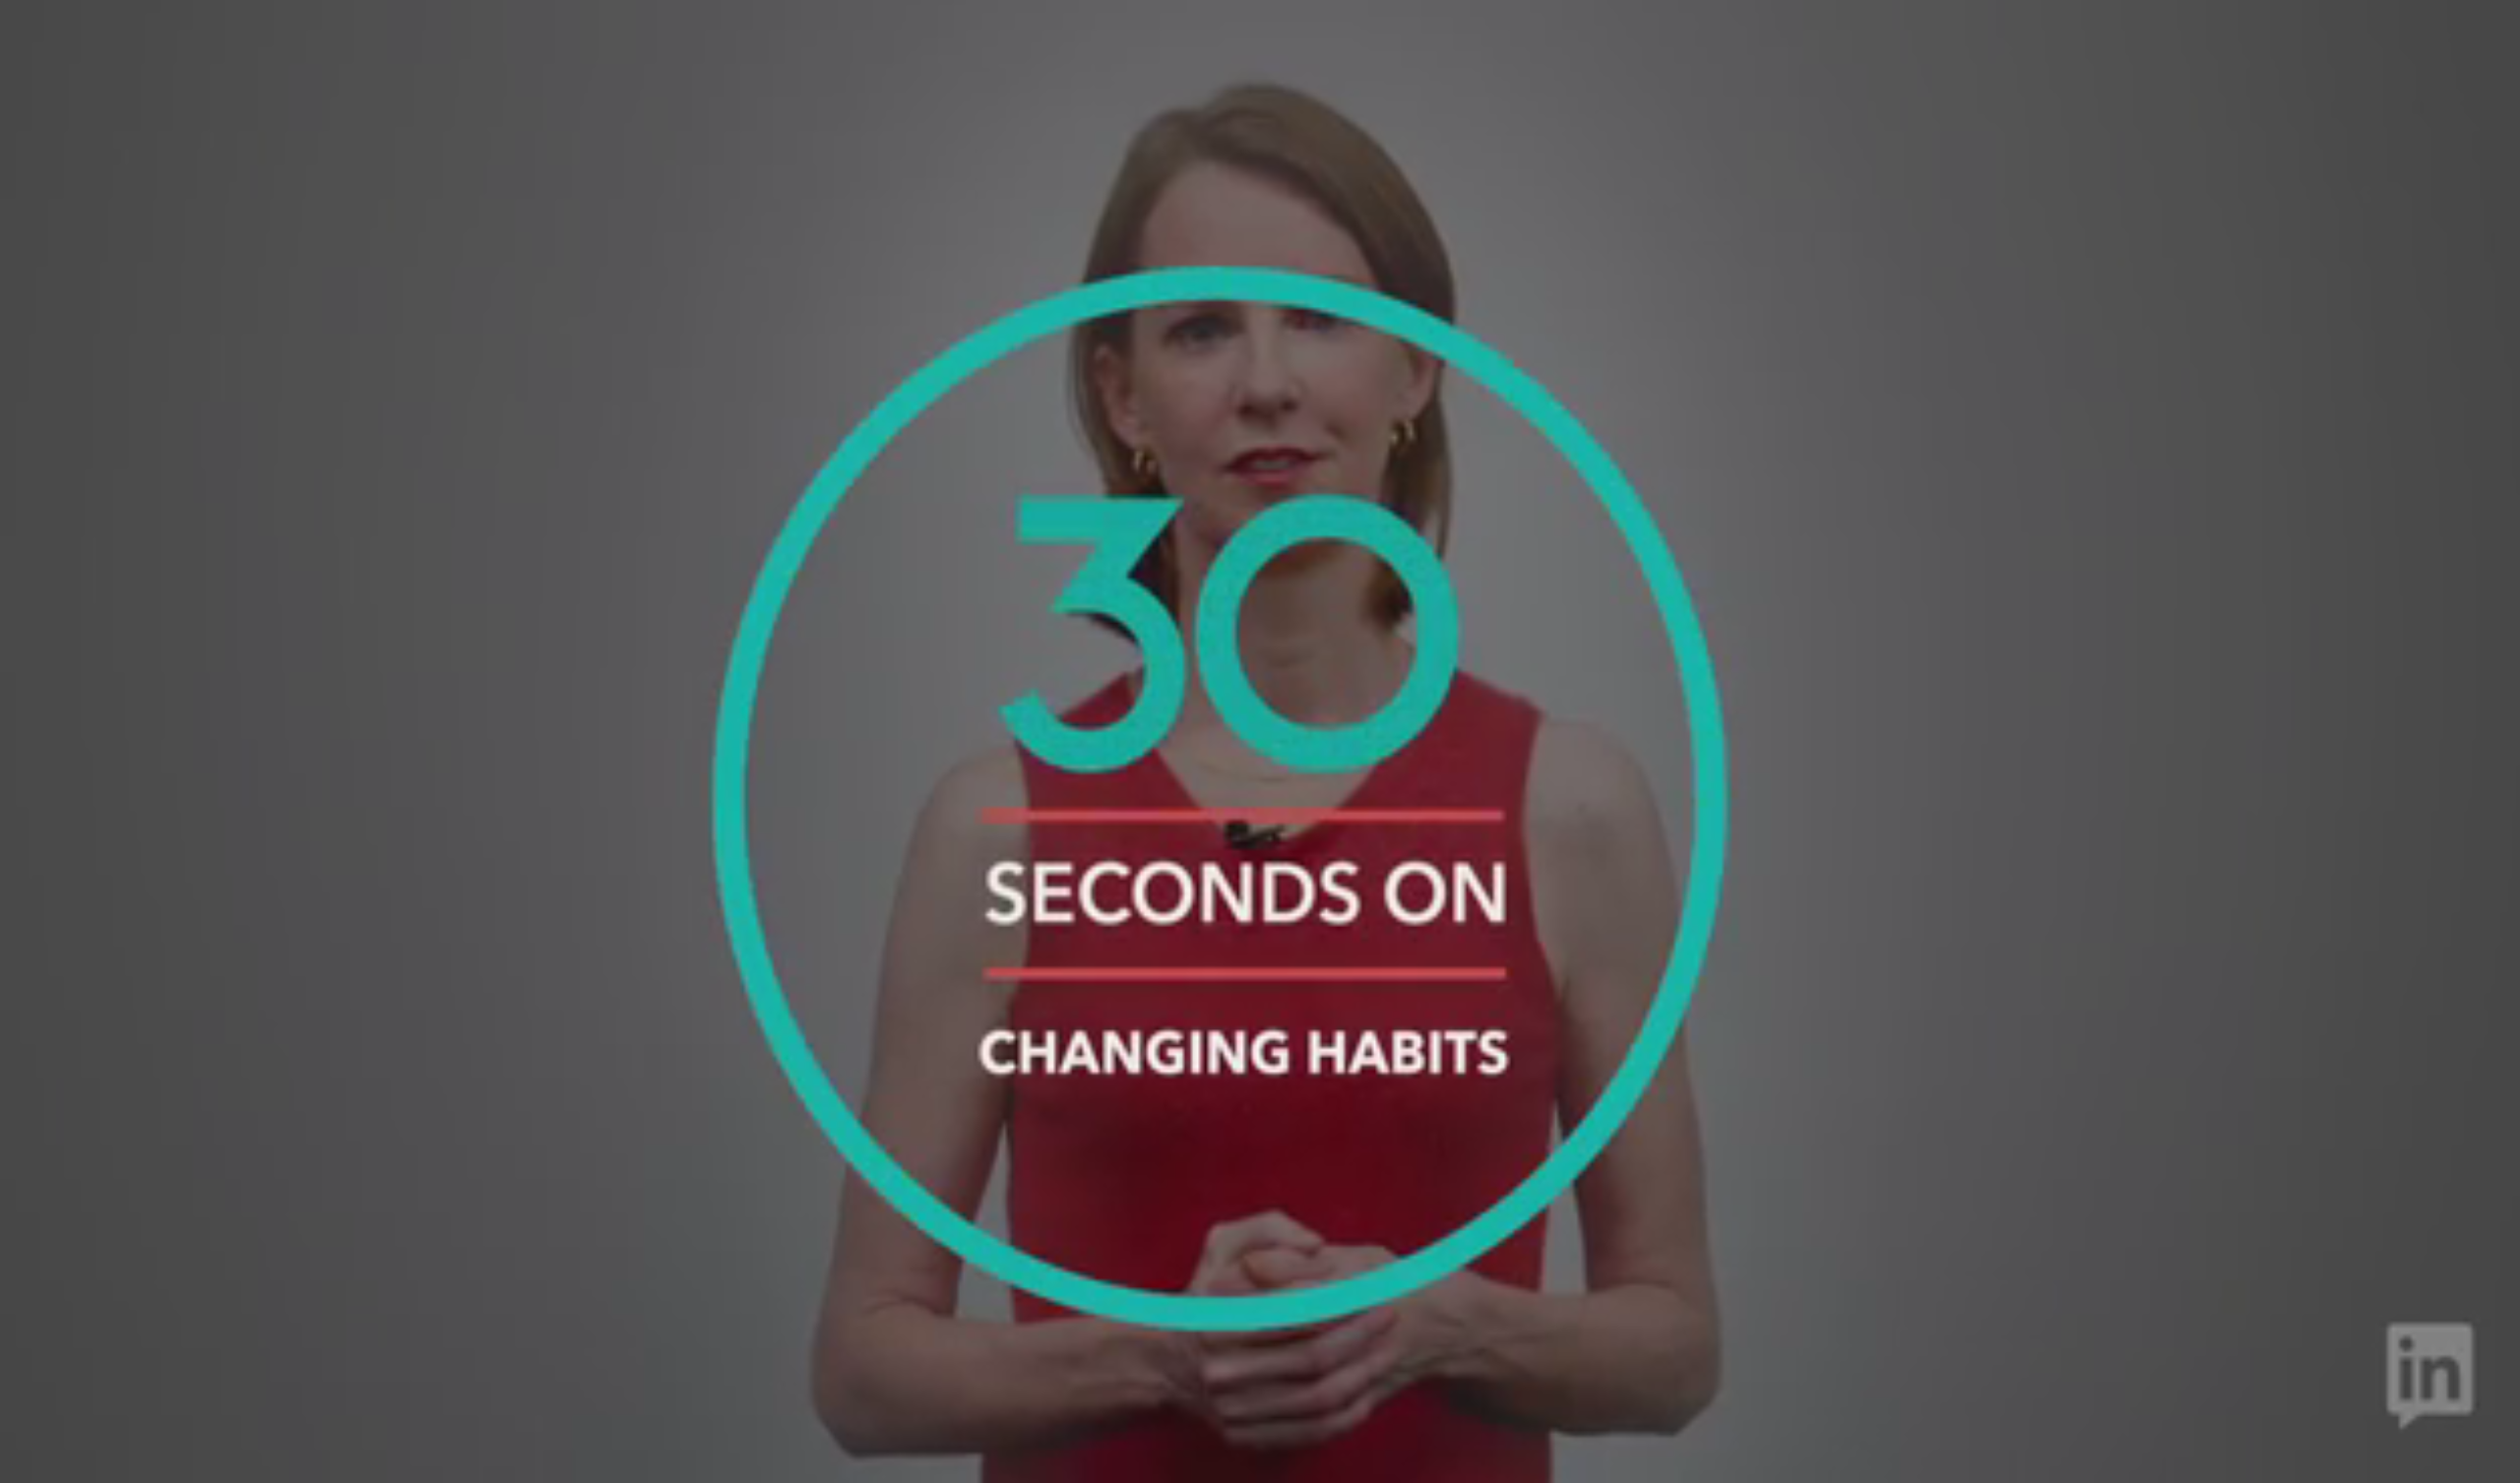 30 Seconds On Changing Habits